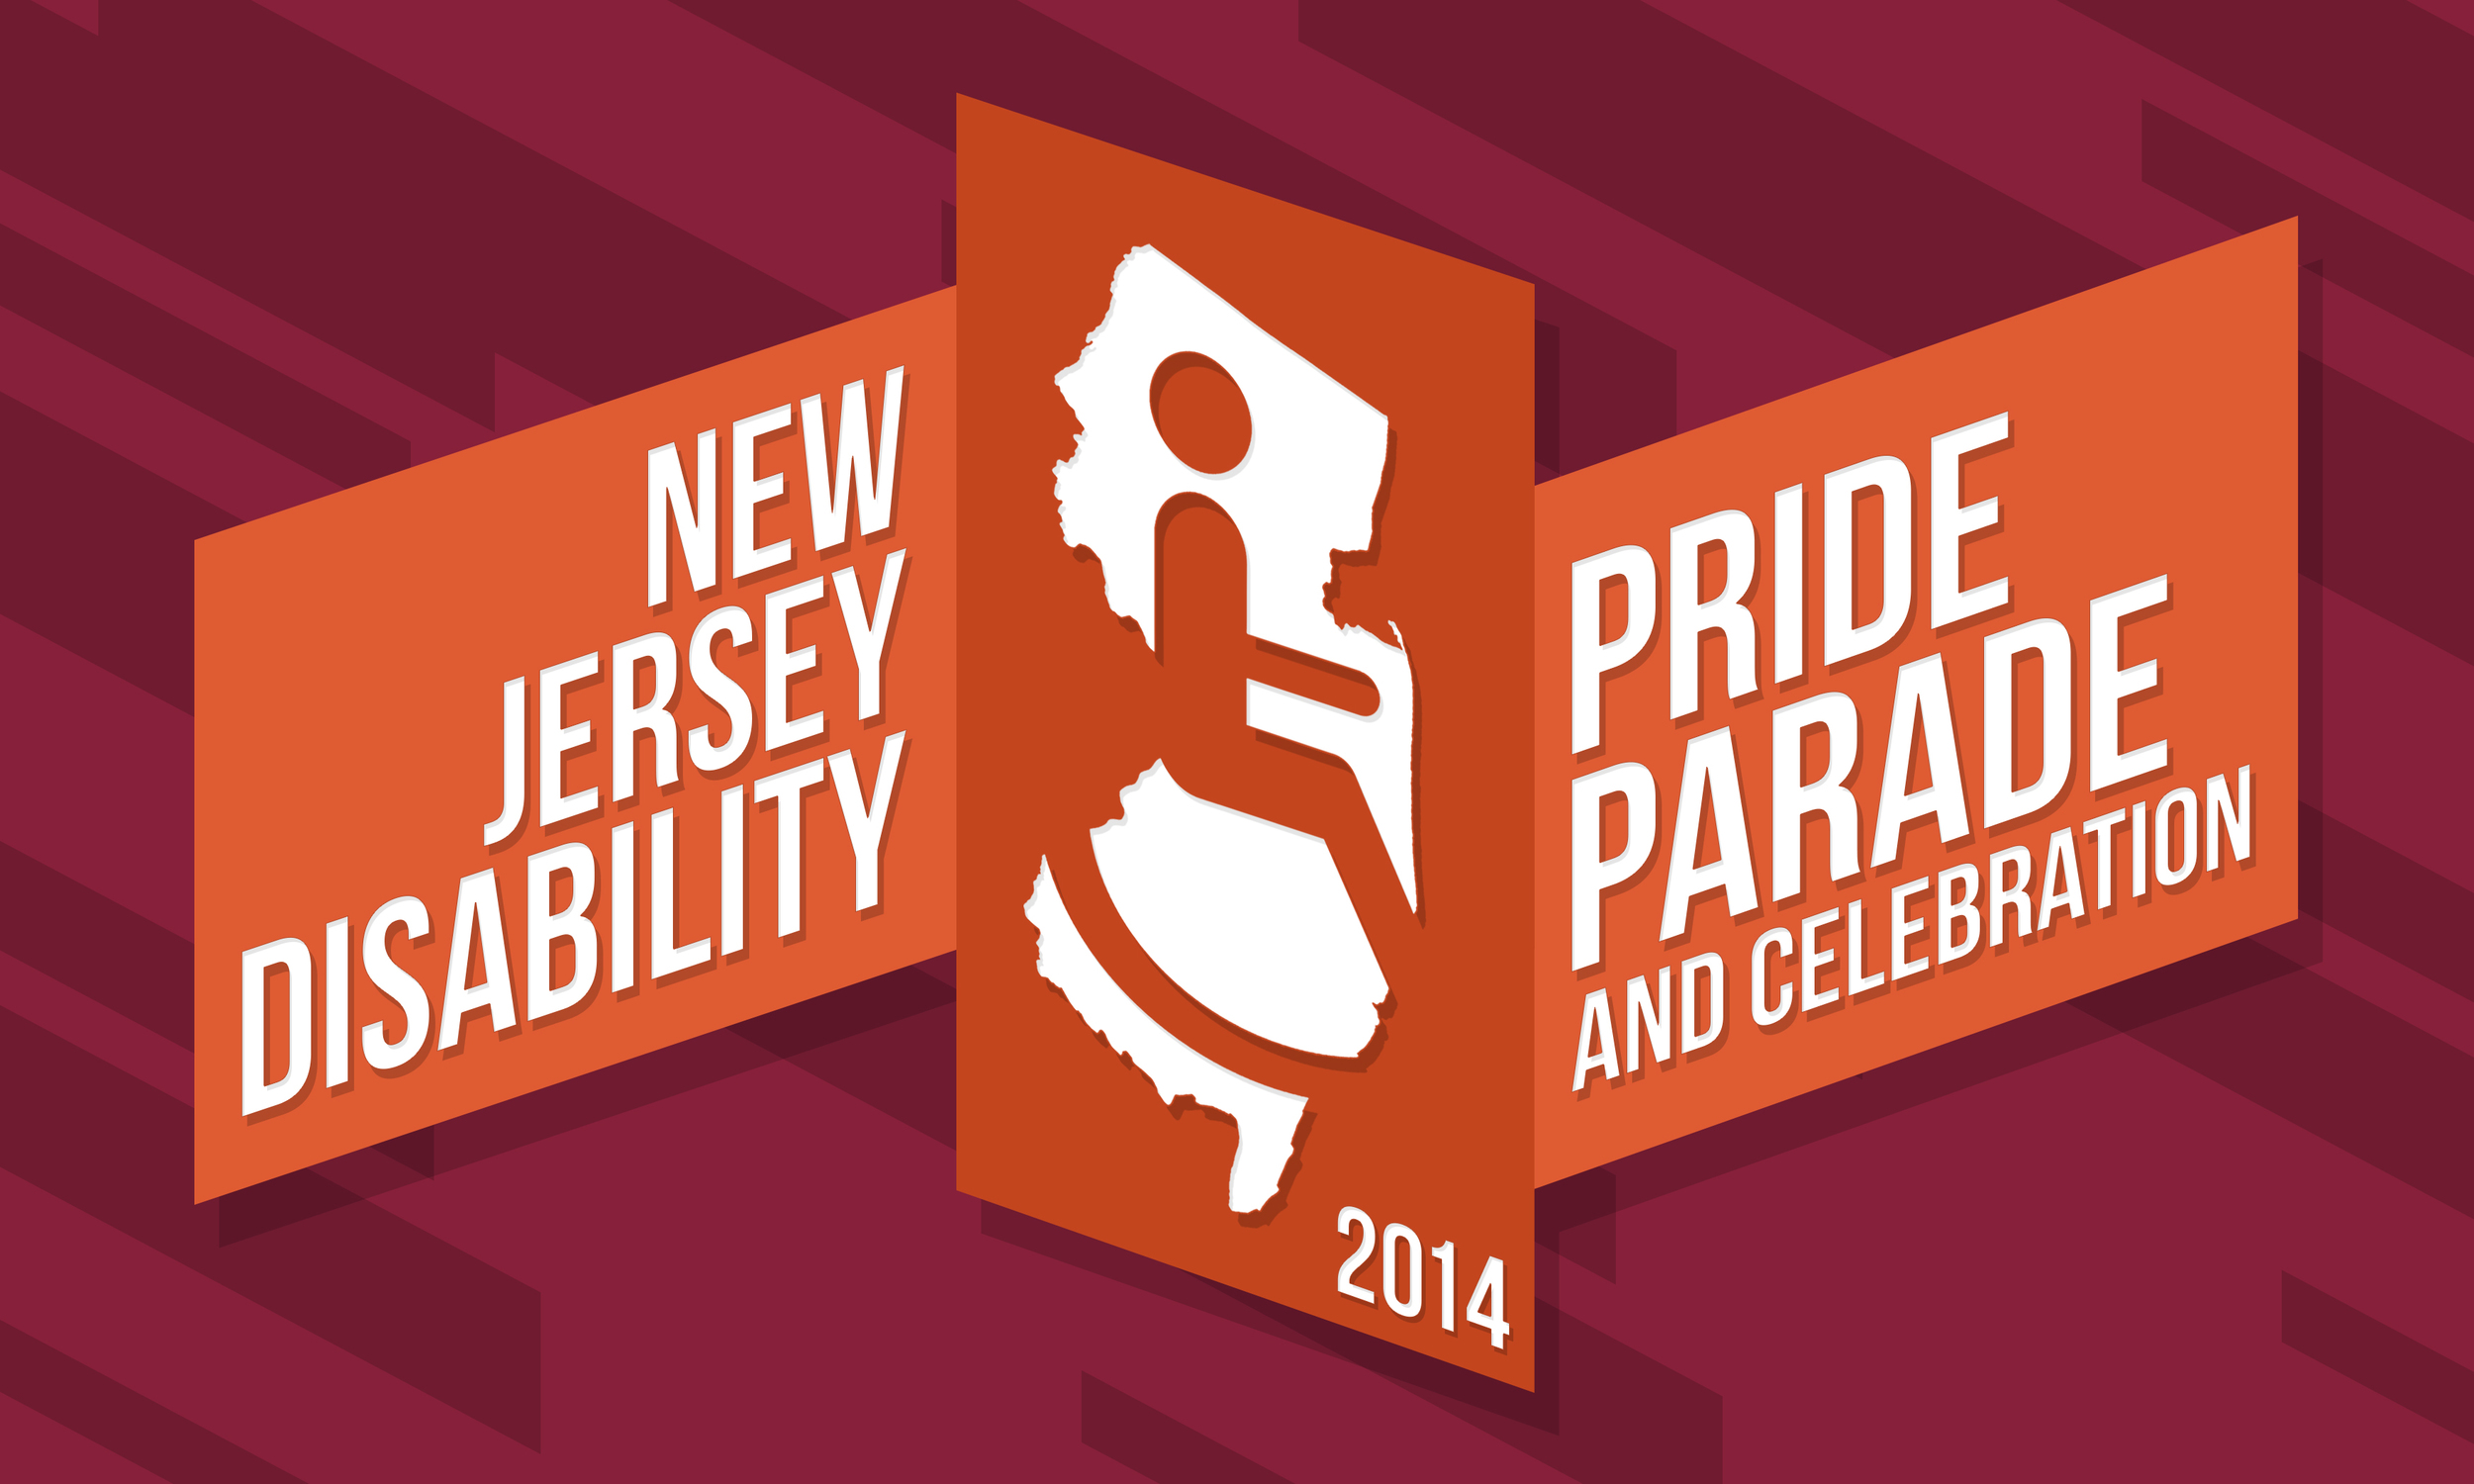 NJ Disability Pride Parade & Celebration 2014